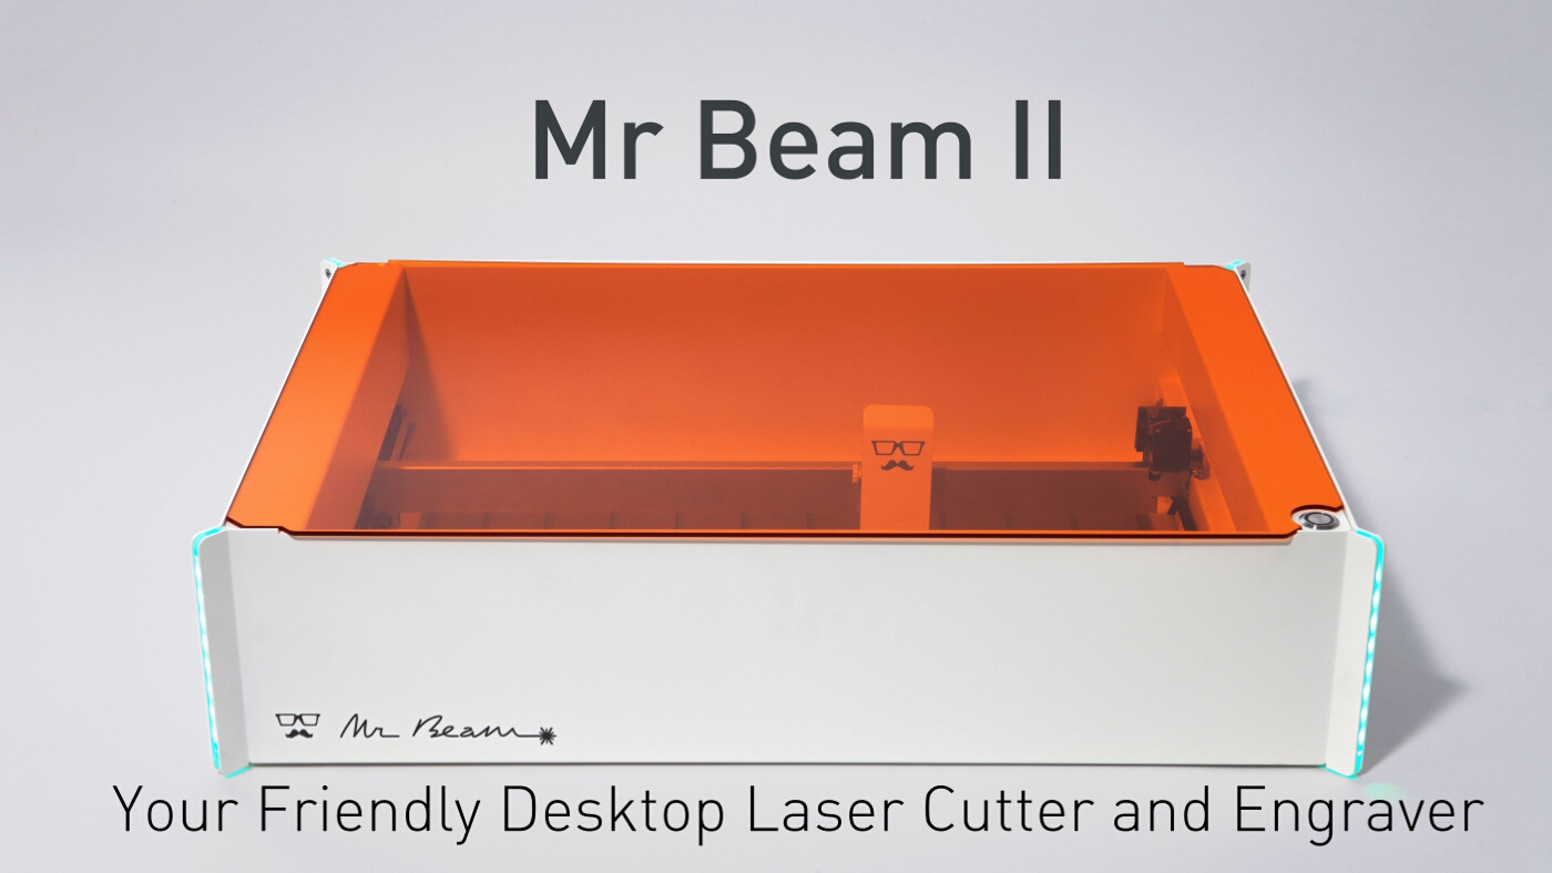 Inne rodzaje Mr Beam II - The Desktop Laser Cutter and Engraver by Mr Beam PQ28